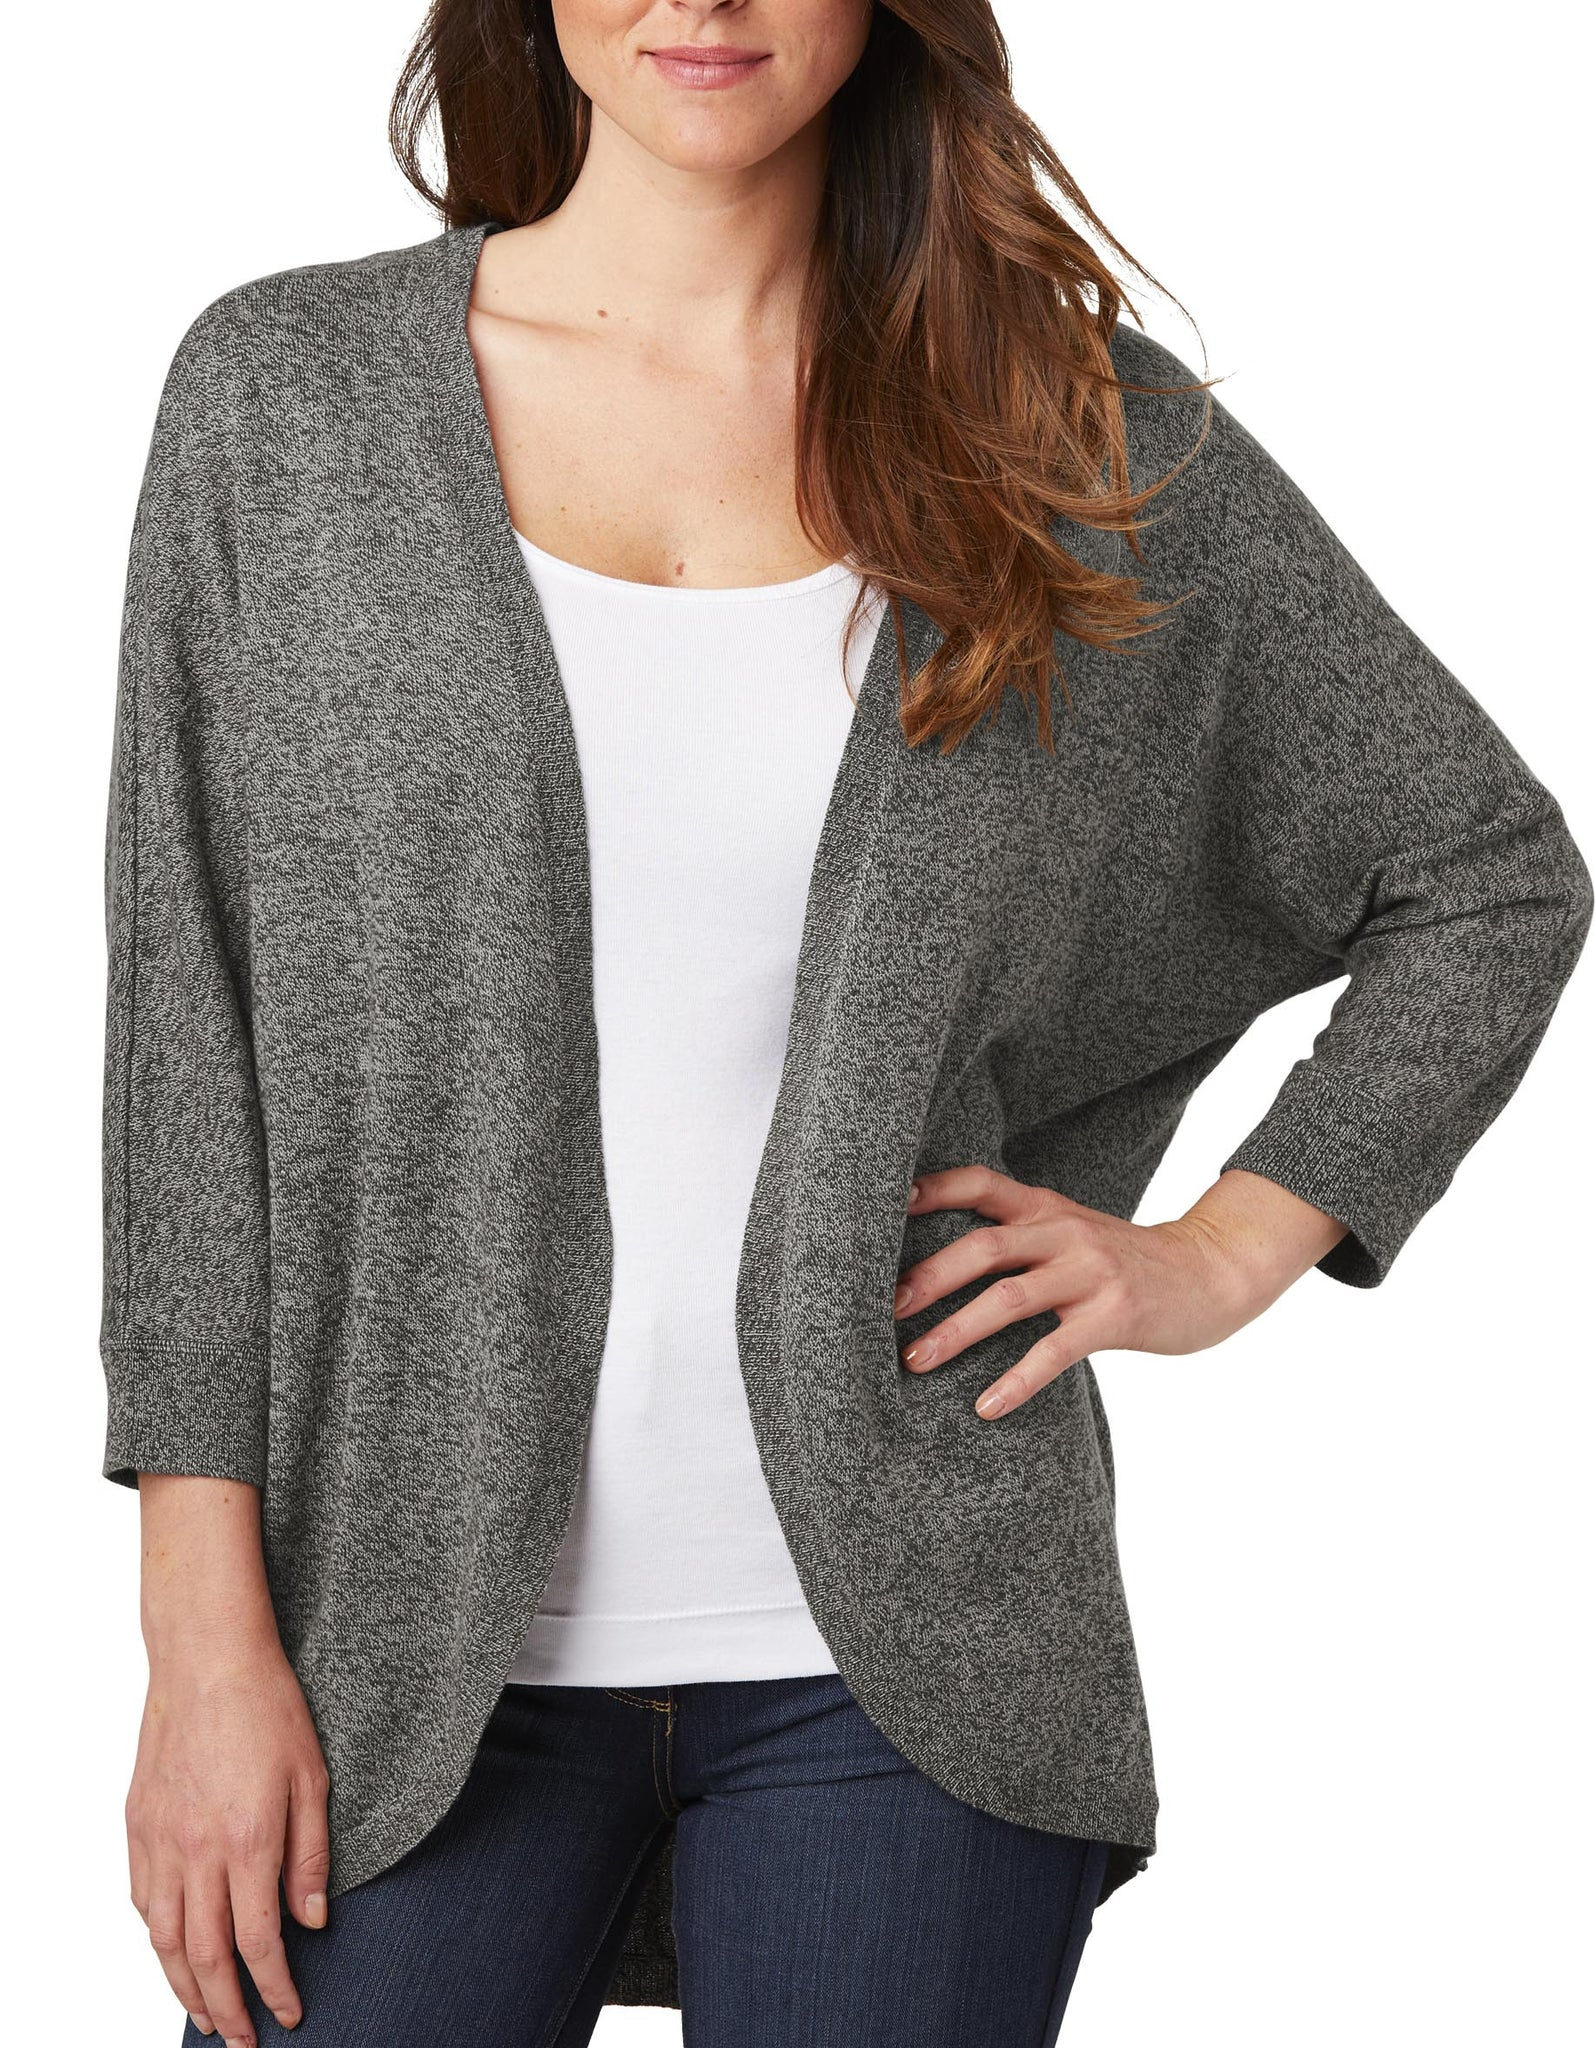 Upscale Ladies 3/4 Dolman Sleeve Marled Cocoon Sweater